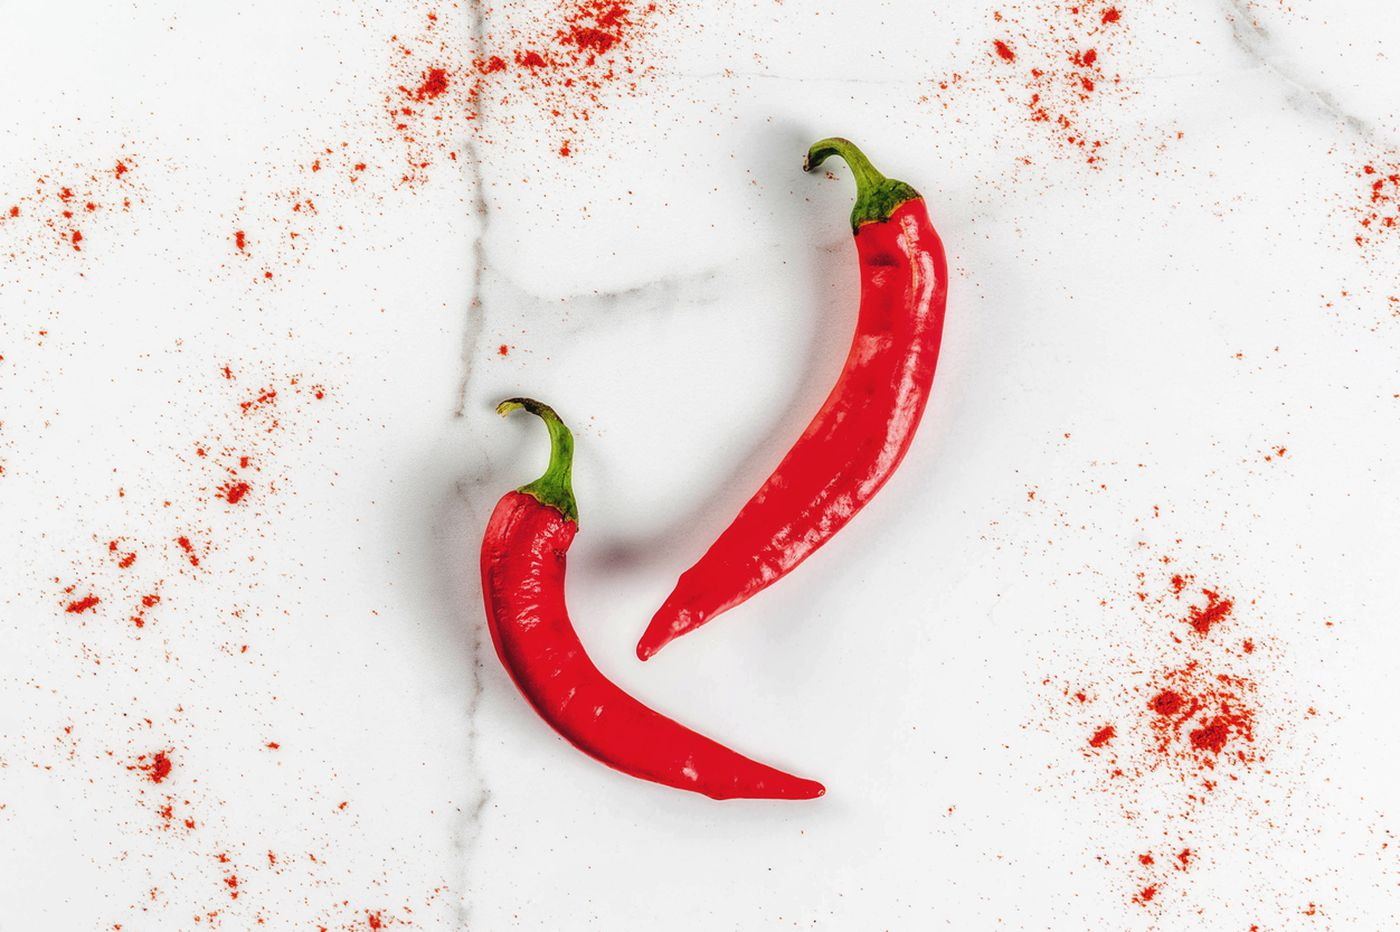 'Fat-burning' foods and other scientific-sounding nutritional trickery